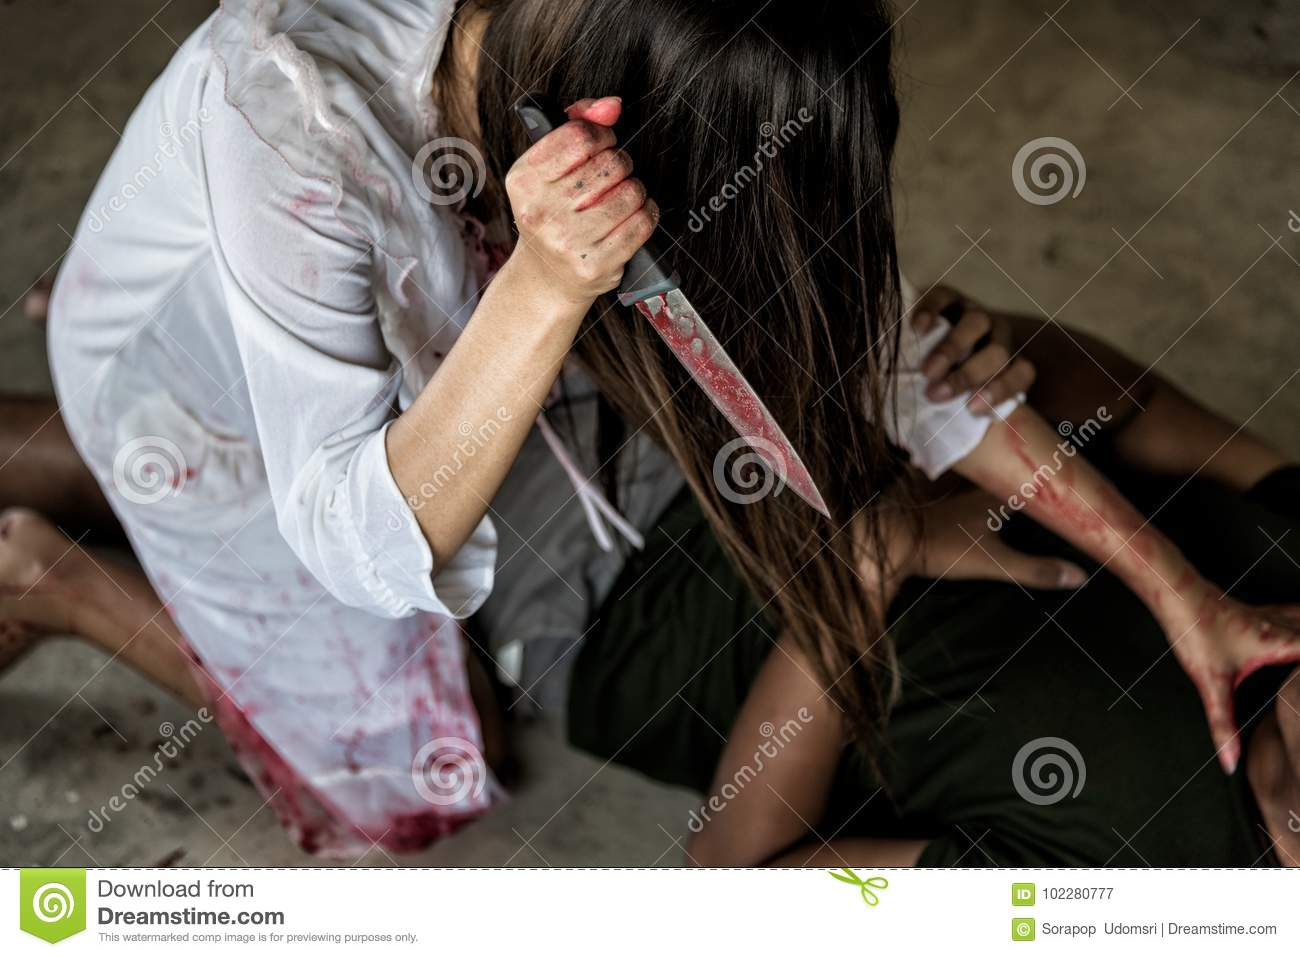 Zombie woman or Woman Ghost holding knife will kill man people